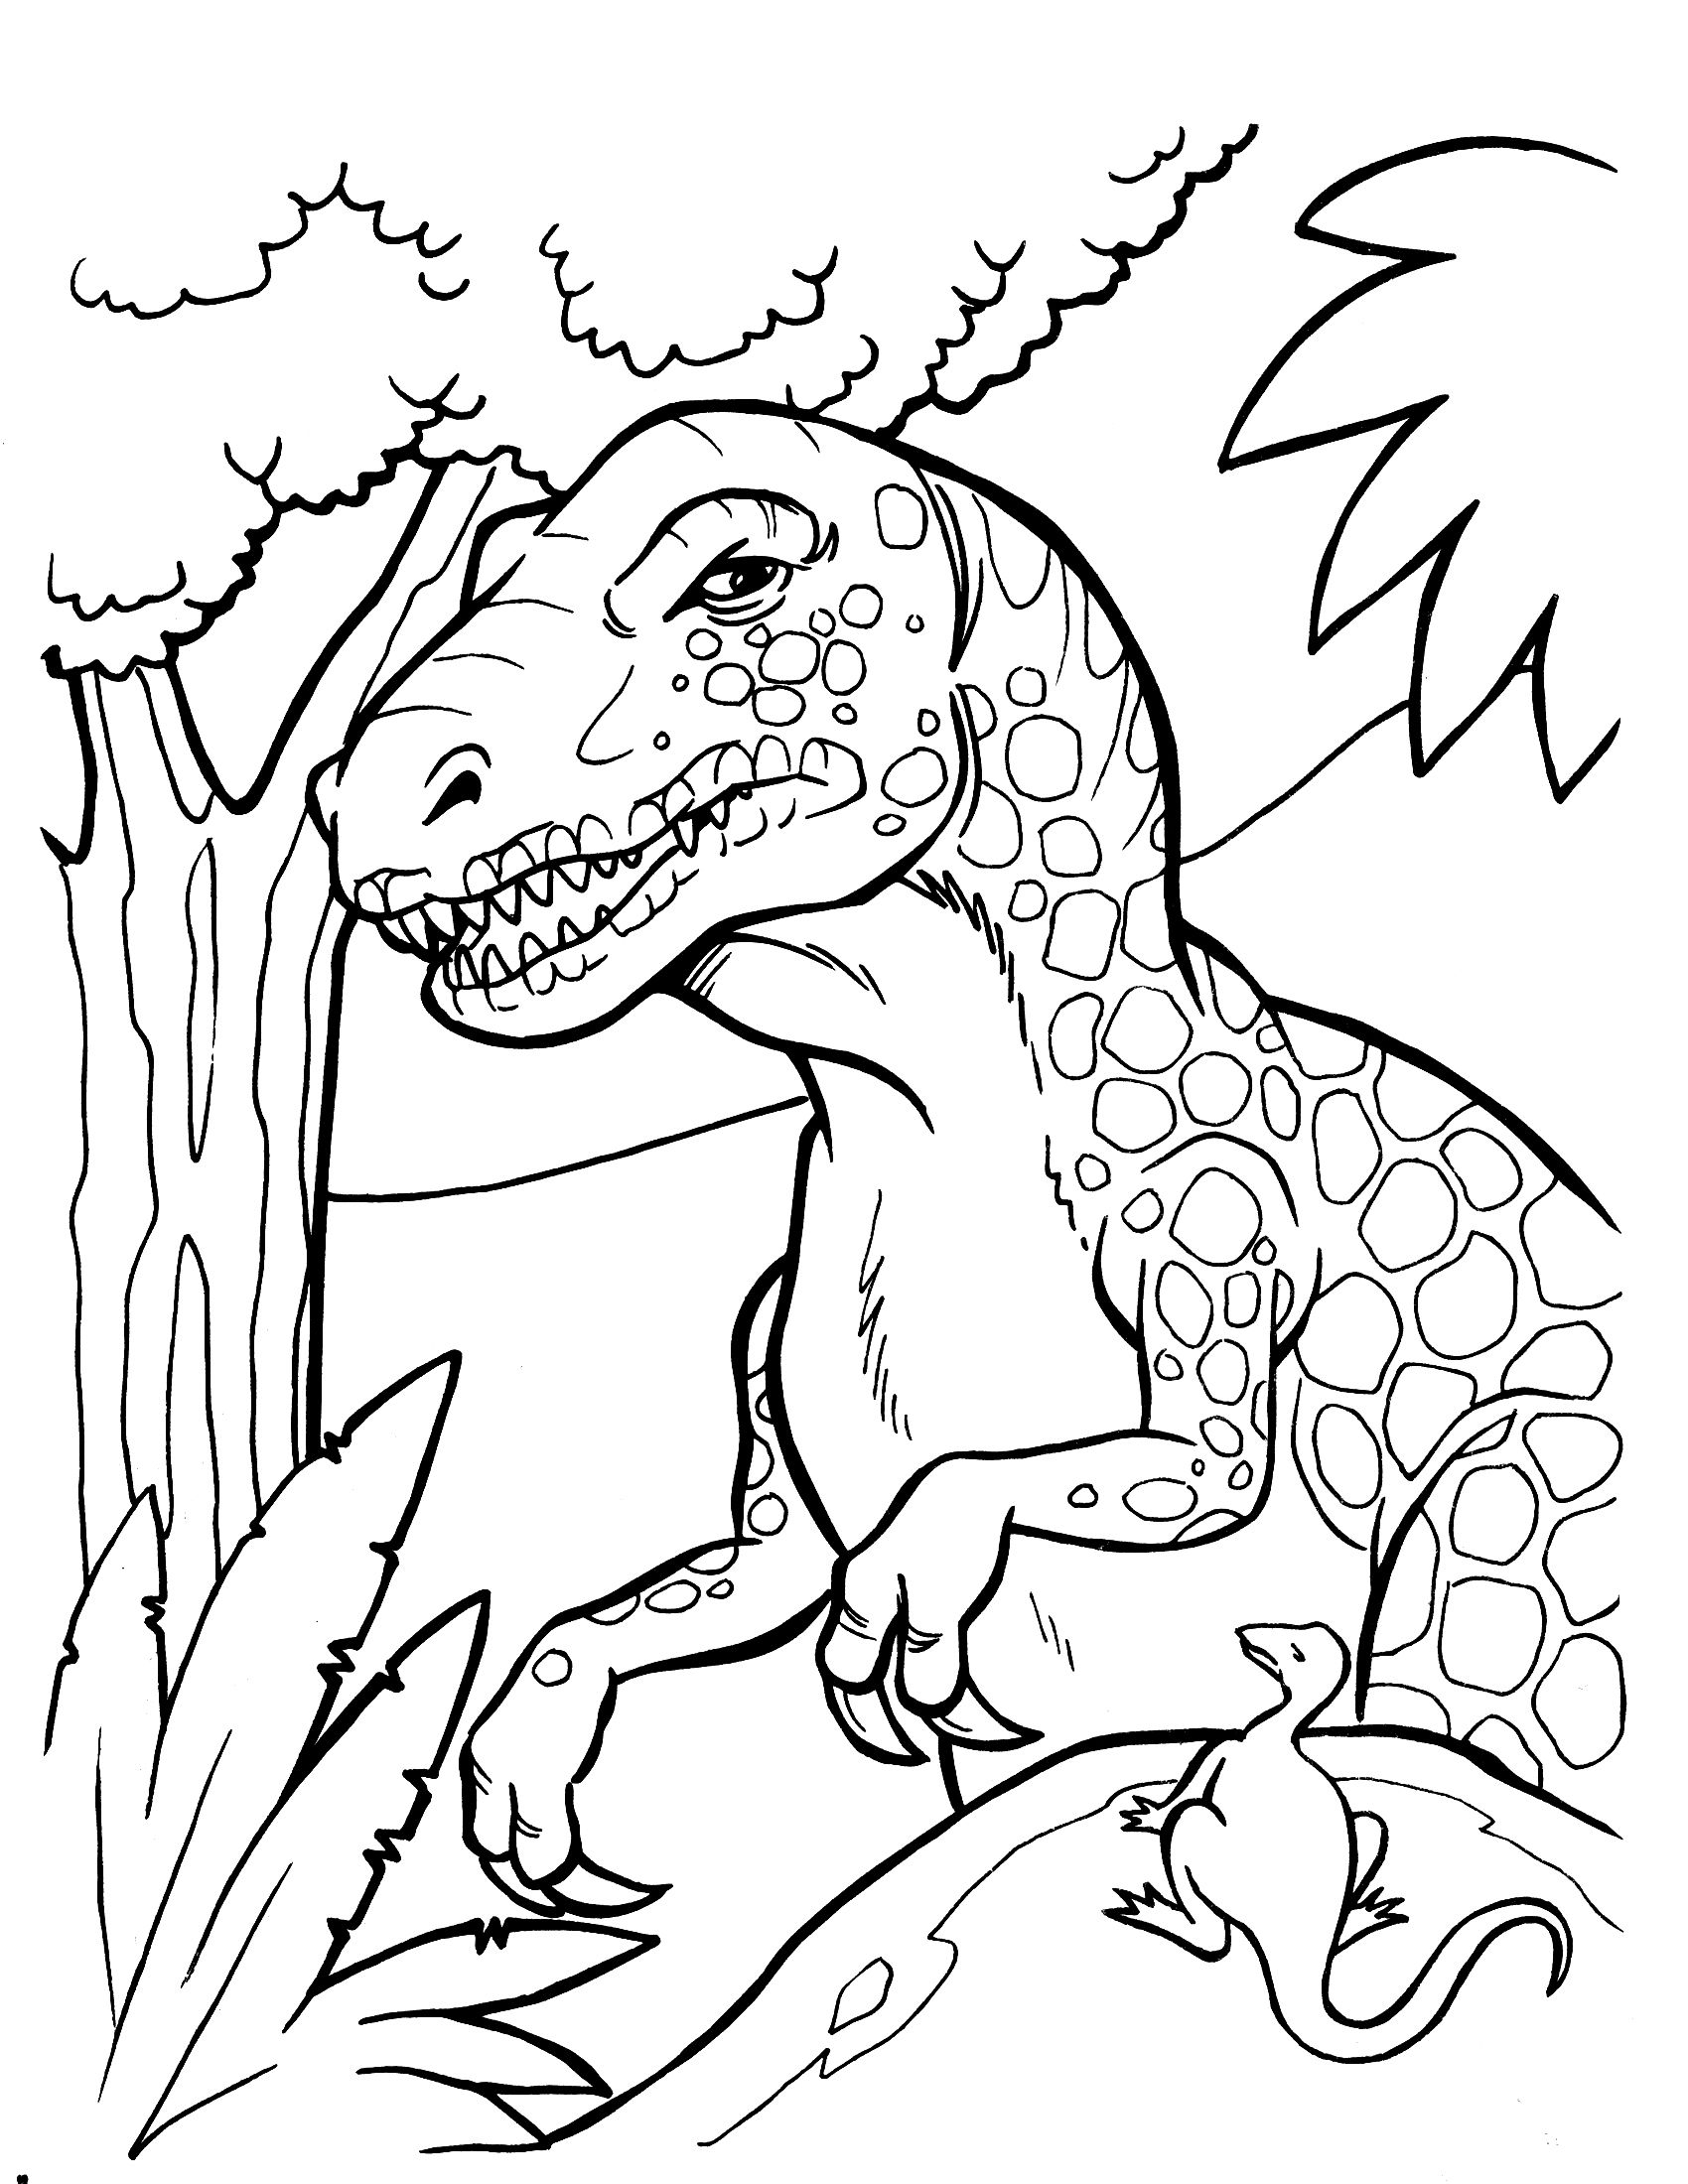 Dinosaur Coloring Pages 360Coloringpages | Adult Coloring - Free Printable Dinosaur Coloring Pages